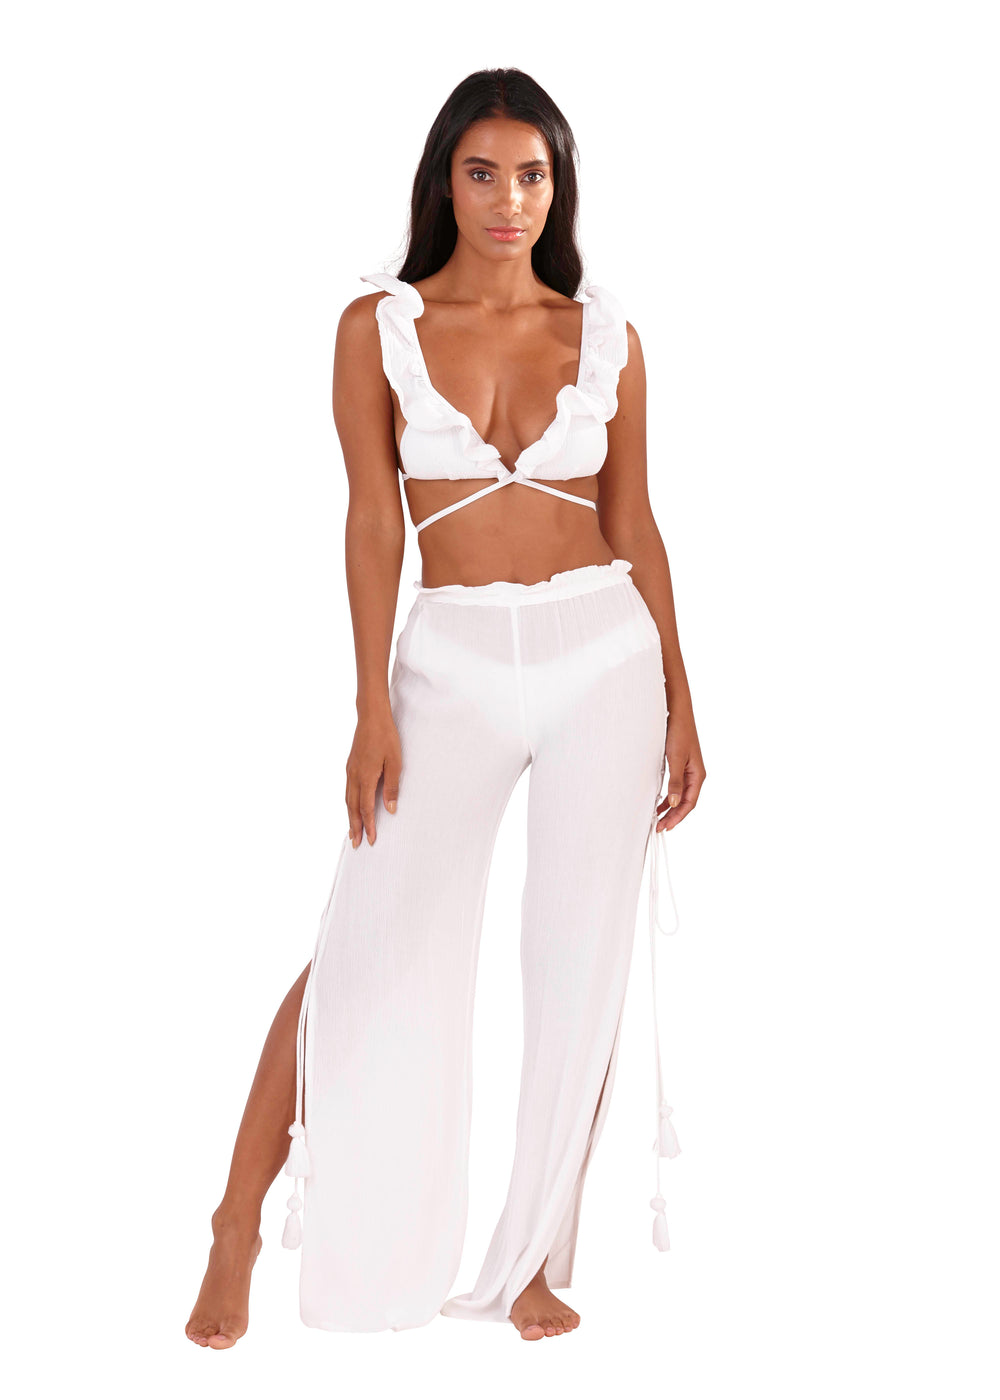 South Beach - White Chiffon Beach Pants